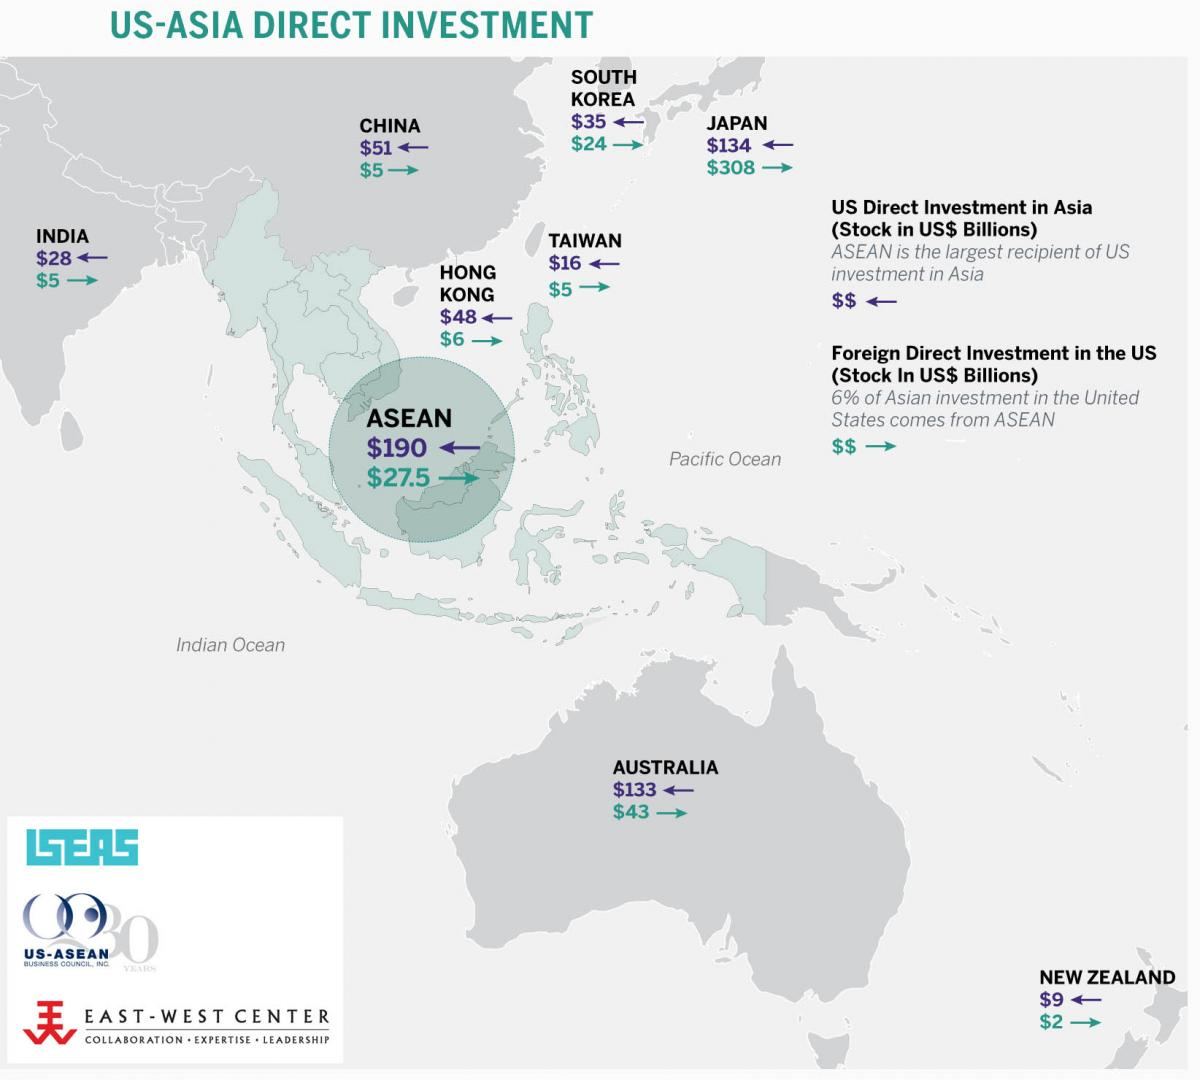 US-Asian direct investments